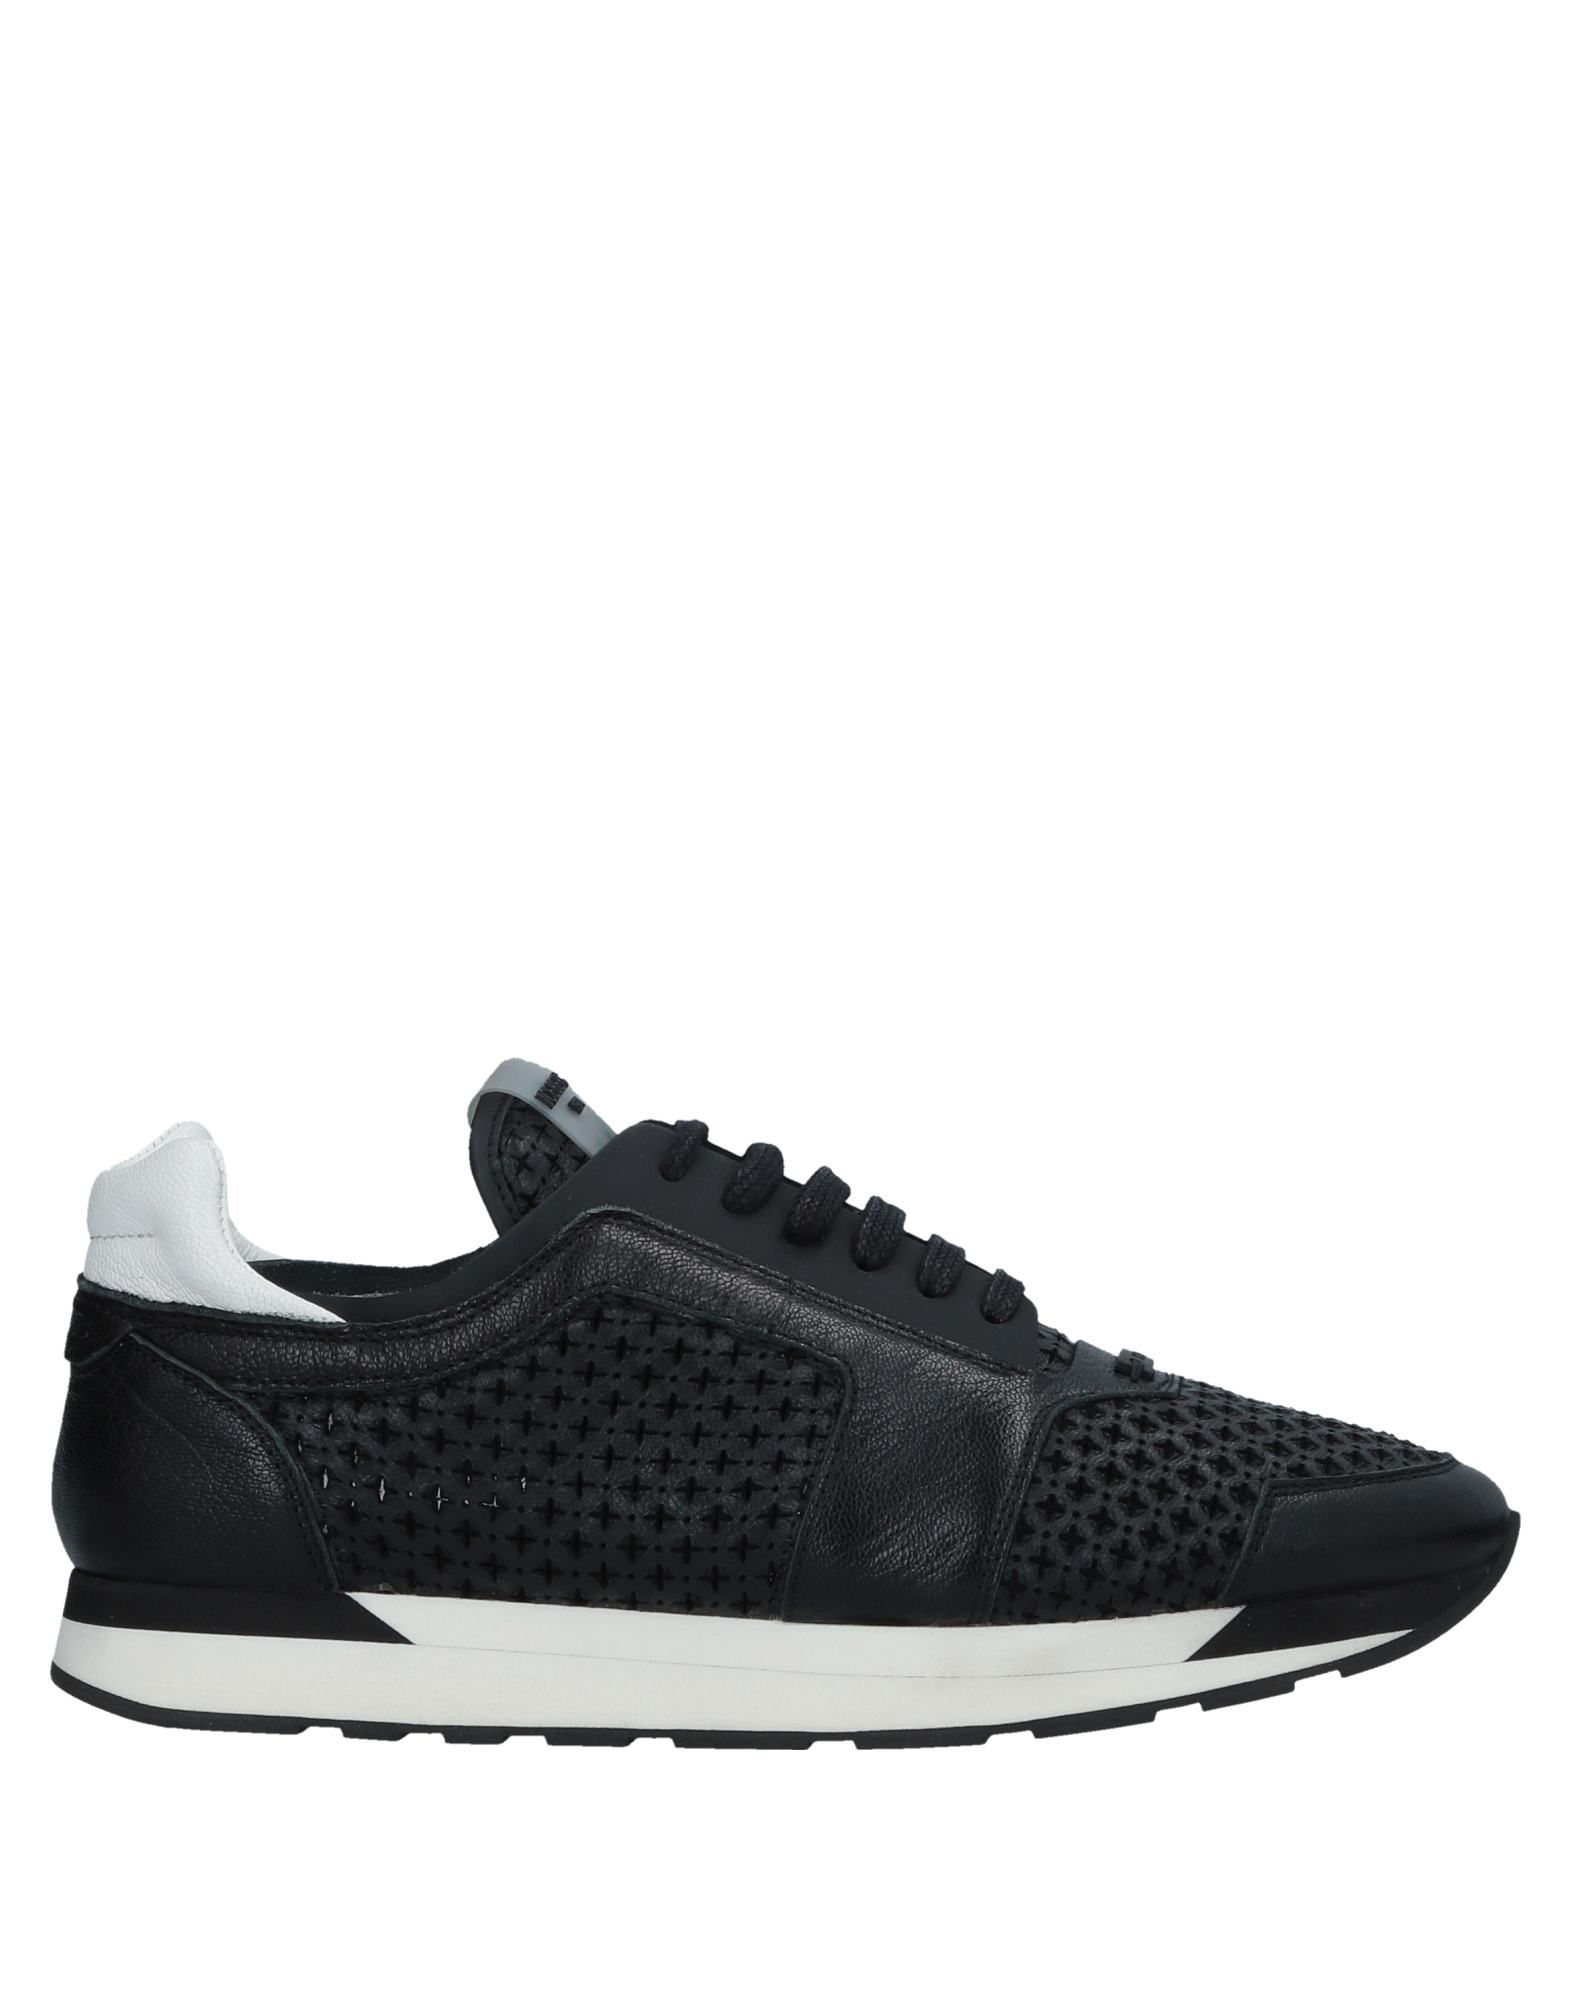 Iceberg Sneakers - Men Iceberg United Sneakers online on  United Iceberg Kingdom - 11528268JC 7c9b5d